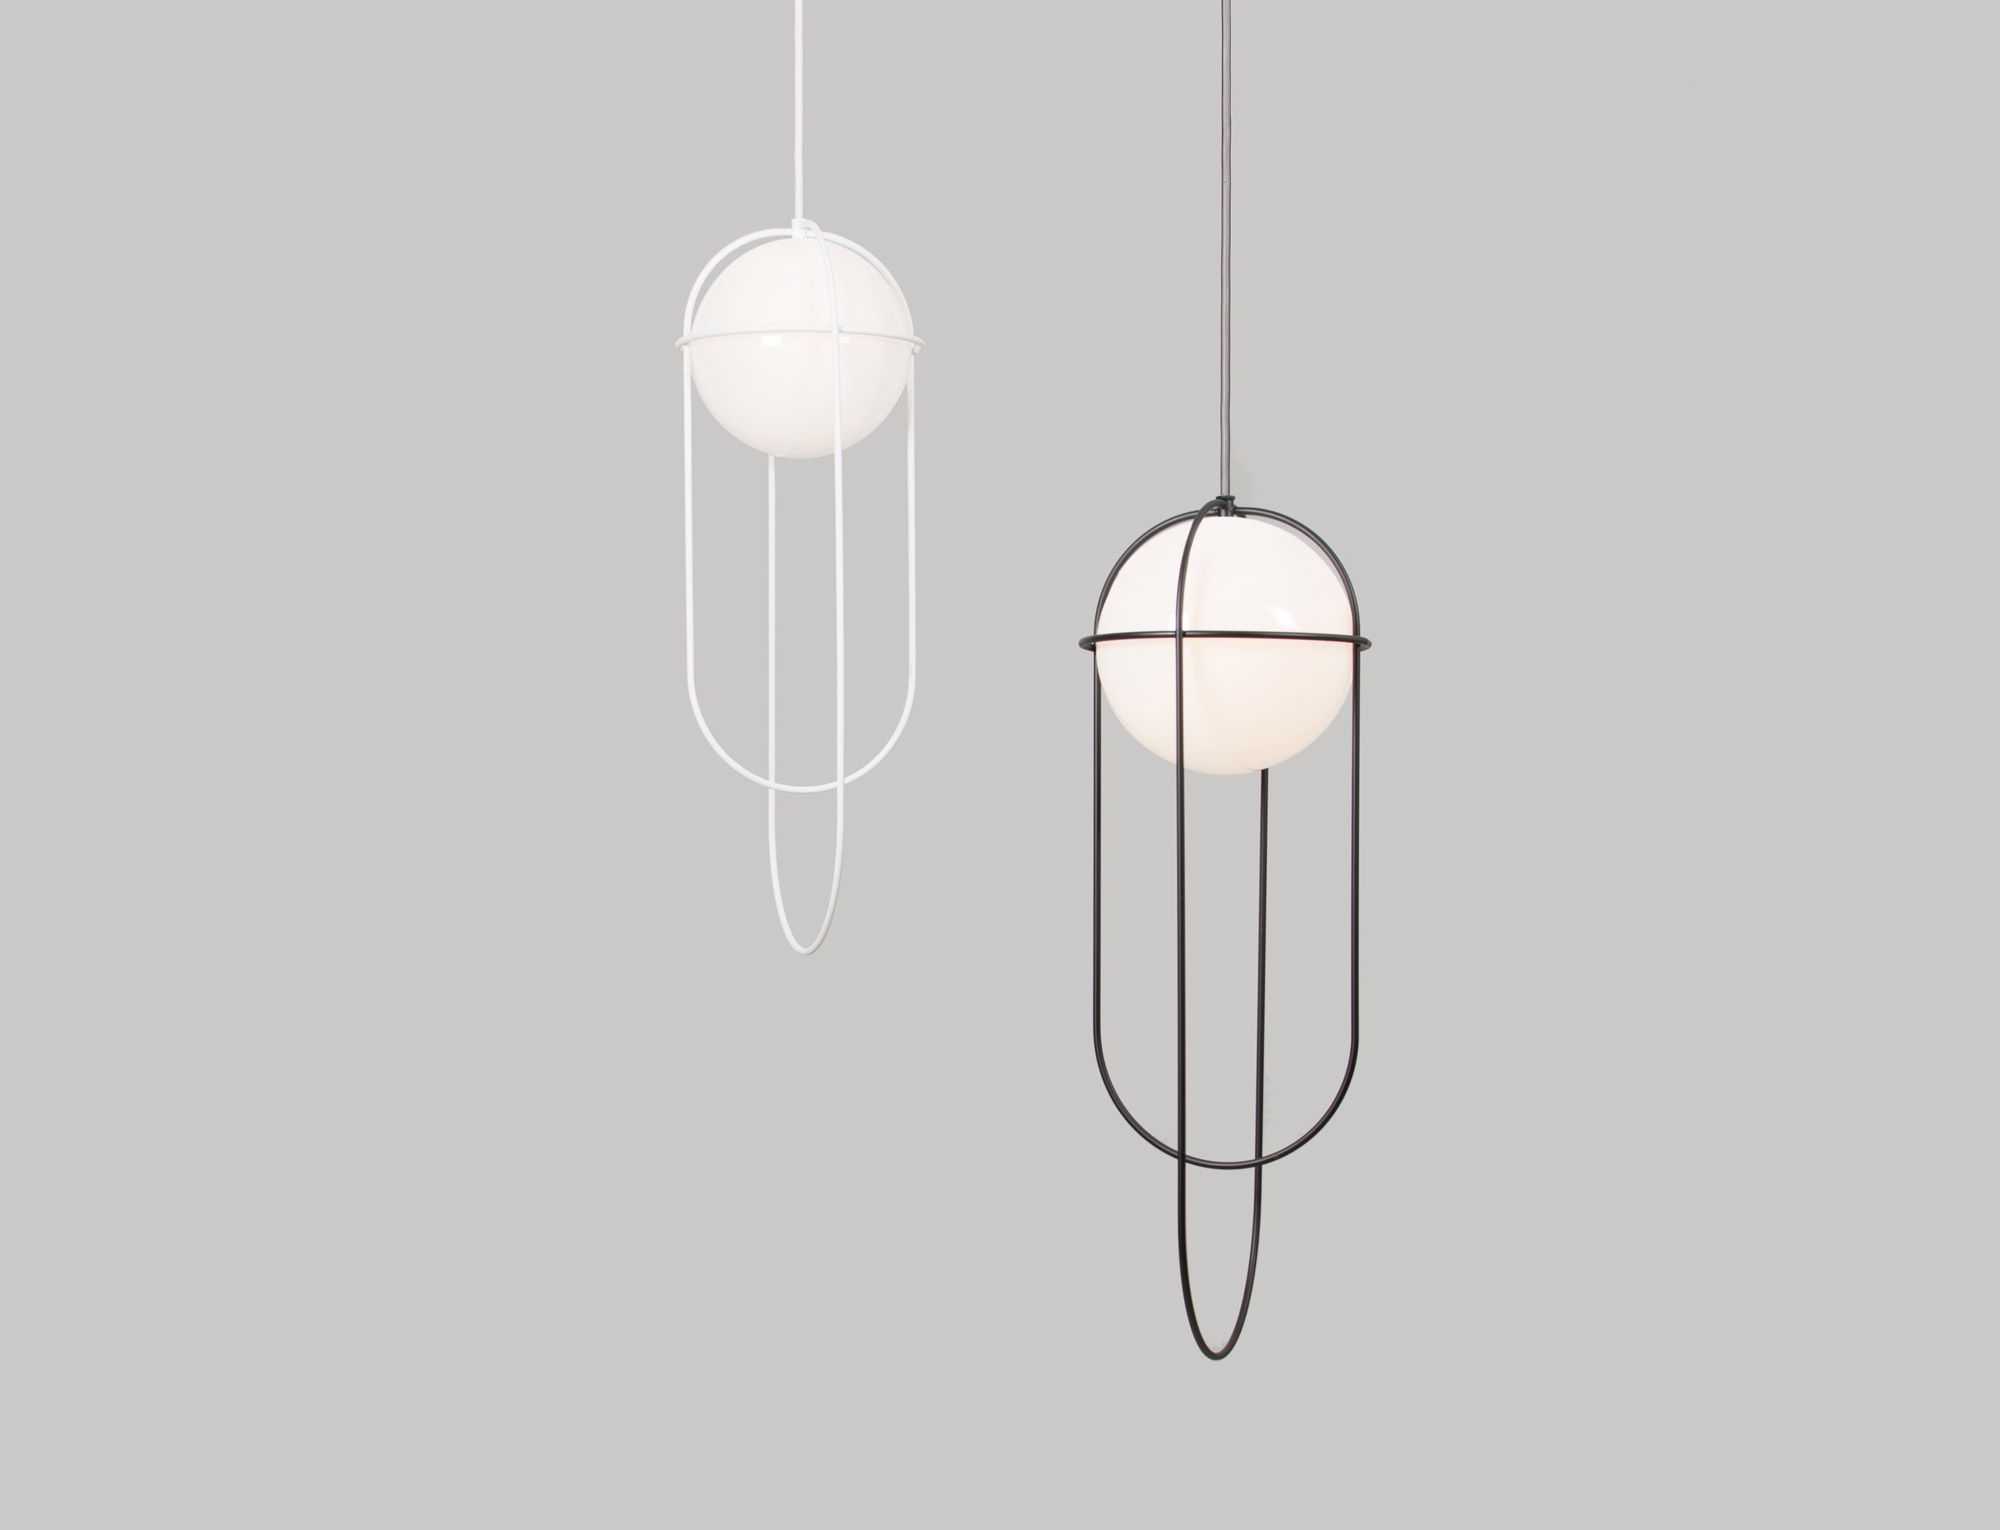 Orbit minimal light fixtures